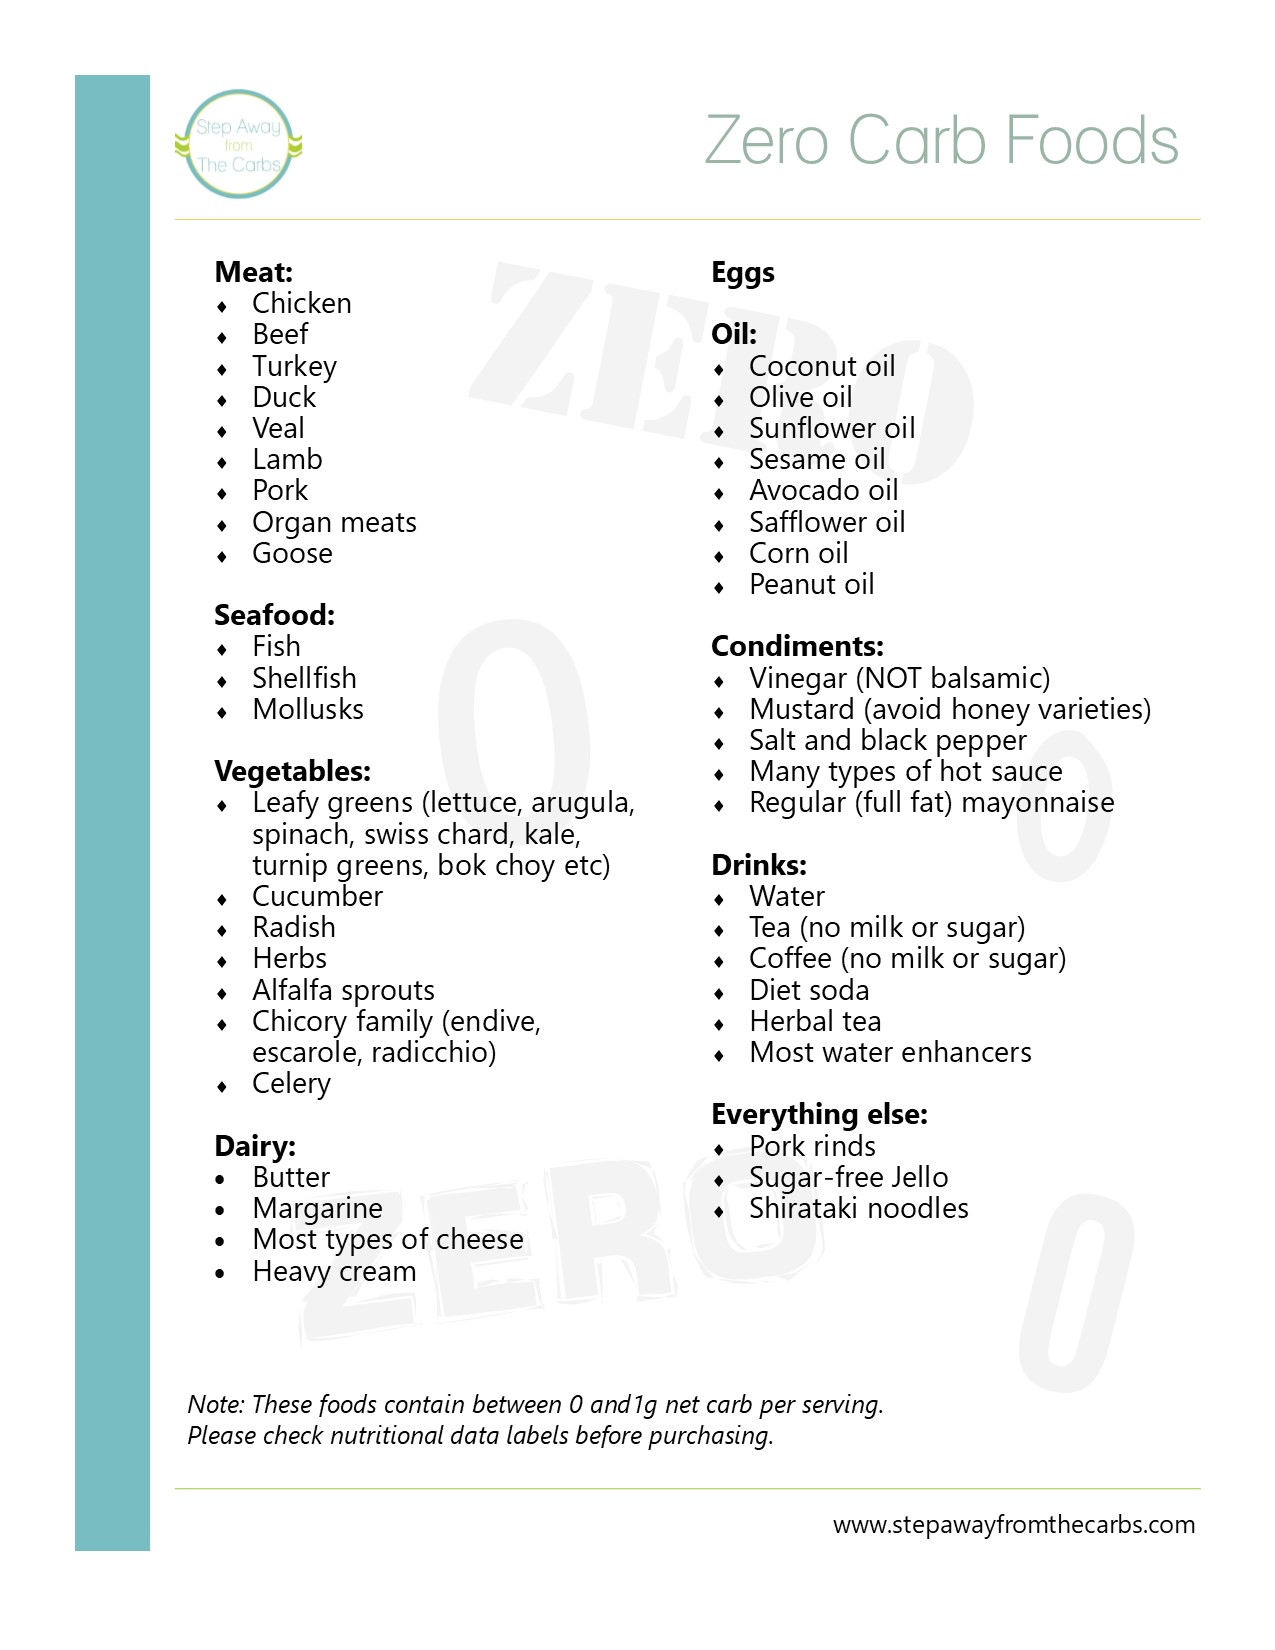 photo relating to No Carb Food List Printable titled Zero Carb Foods Printable - Stage Absent Towards The Carbohydrates